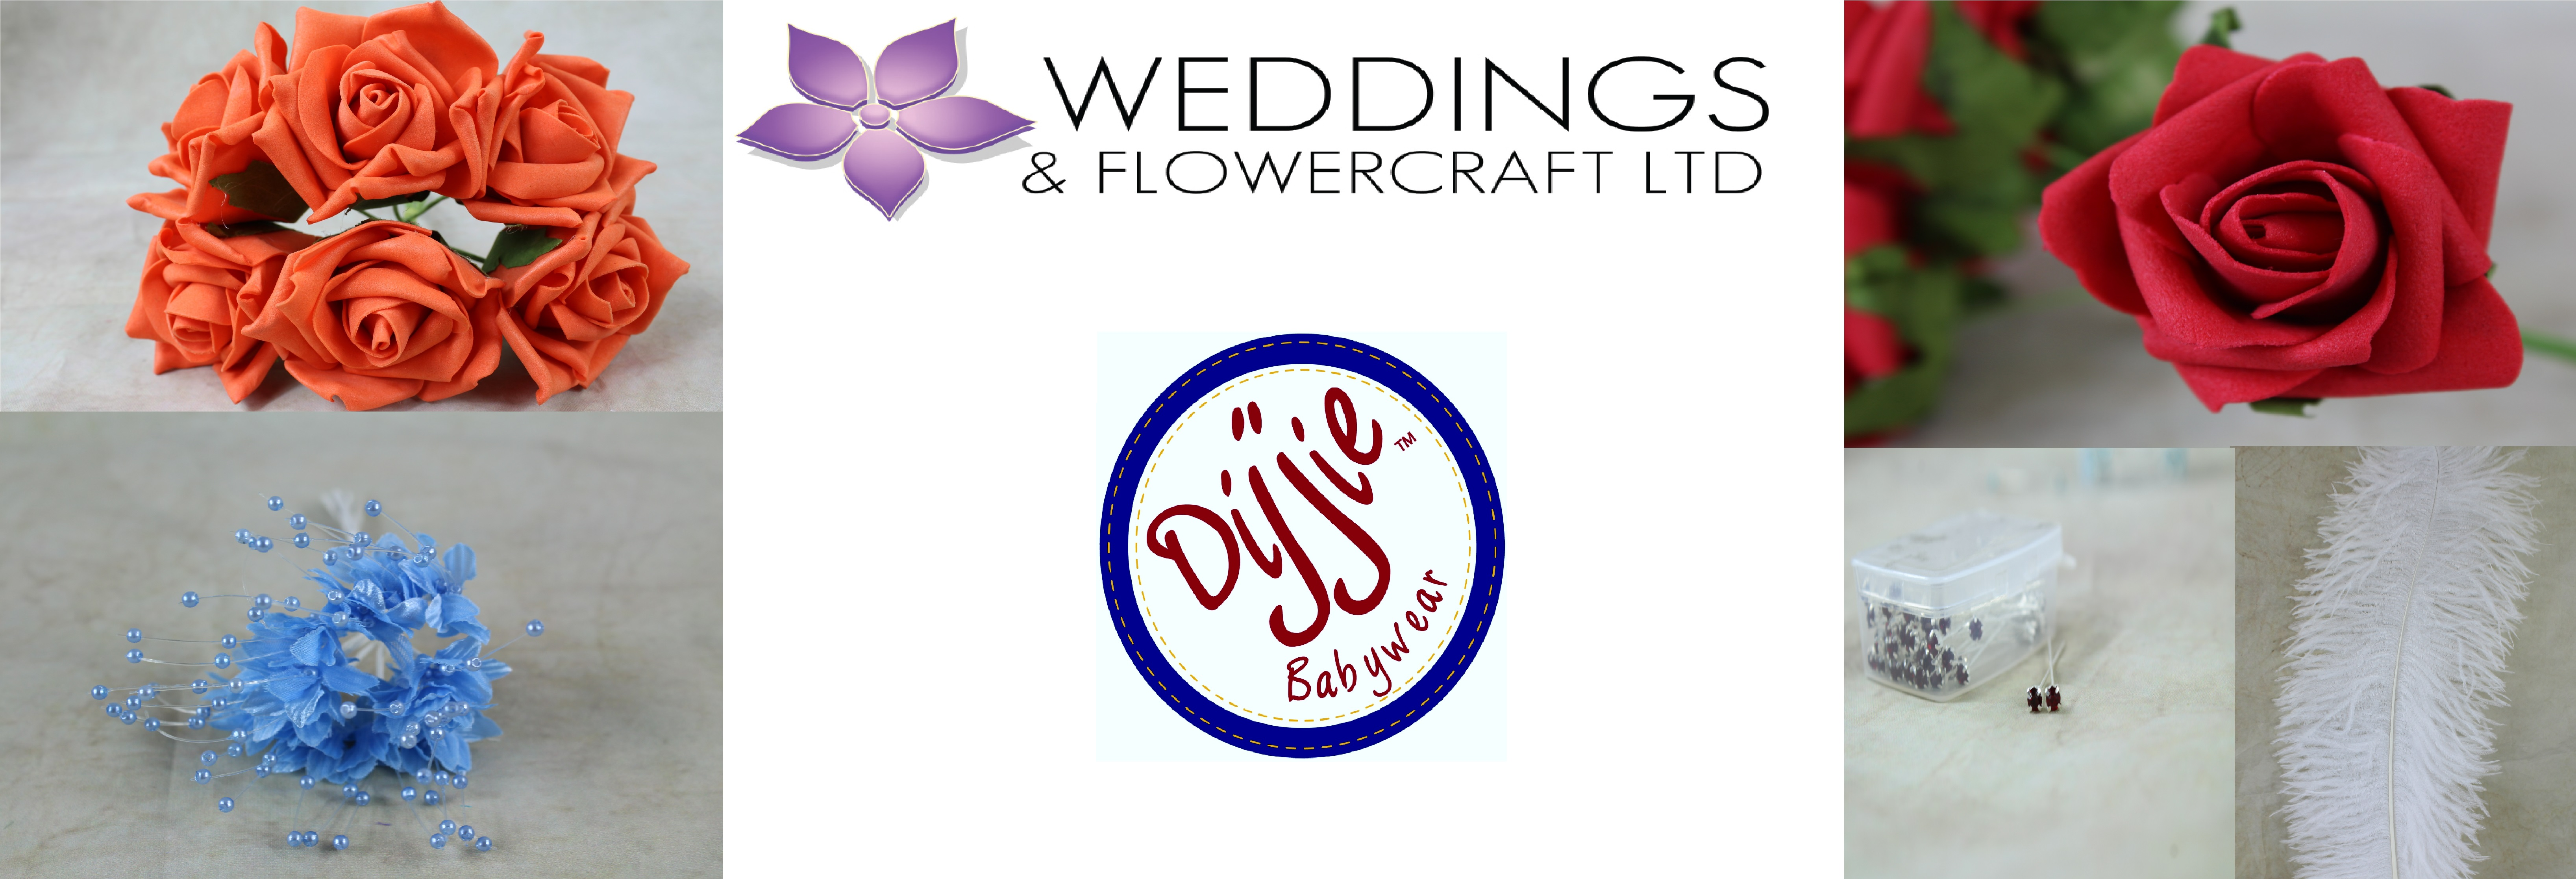 Weddings & Flowercraft LTD